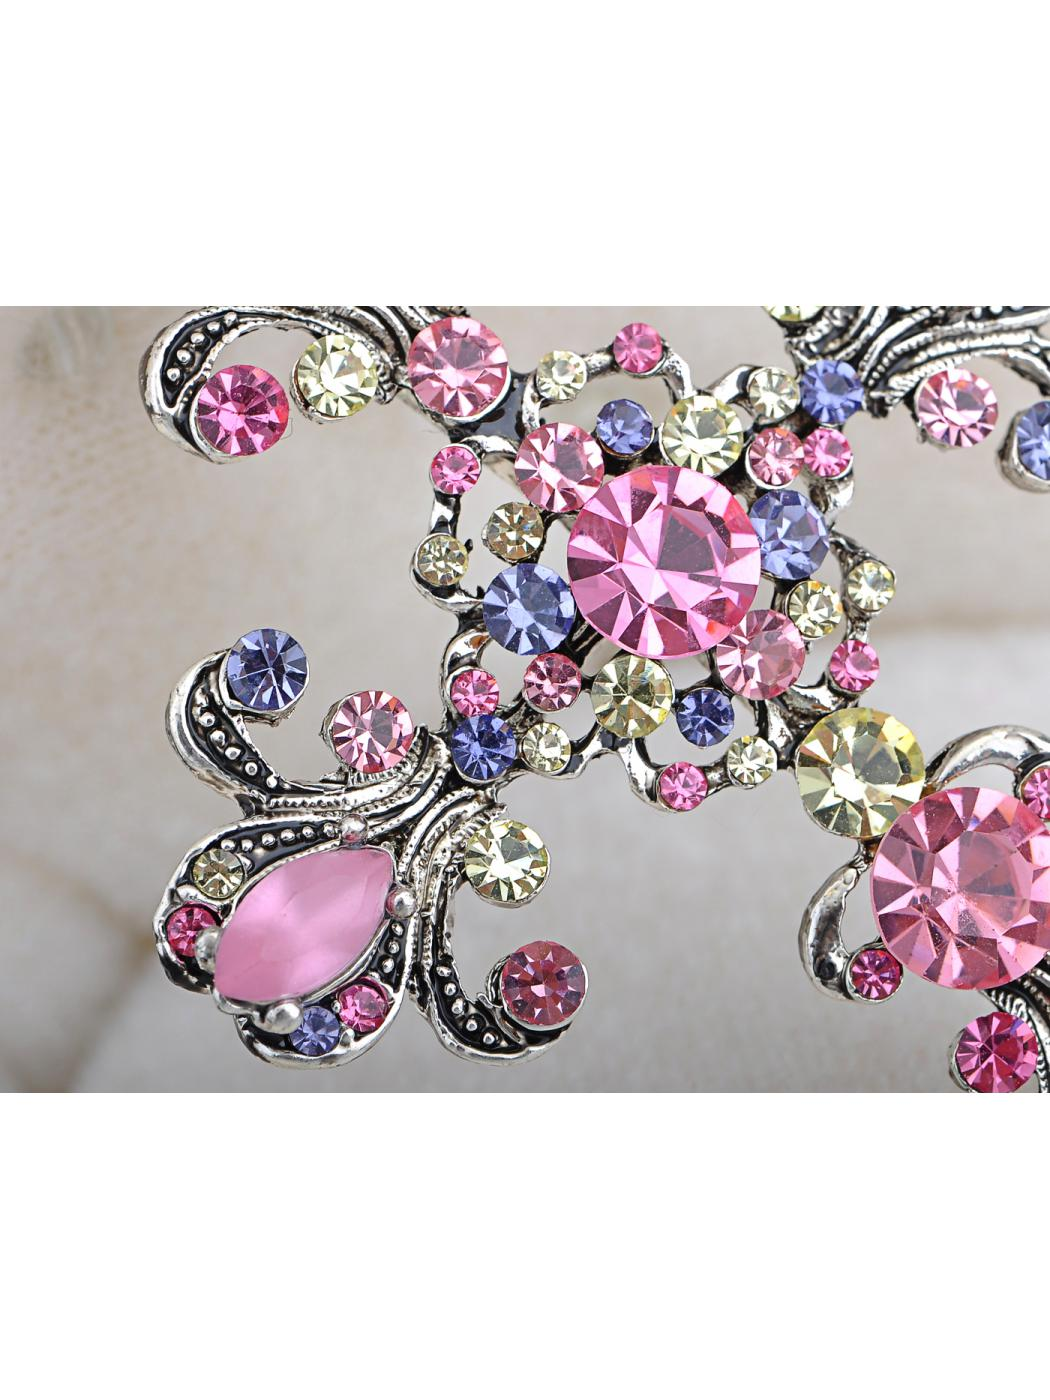 Chic Repro Bright Pink Pastel Holy Flowery Cross Pin Brooch by